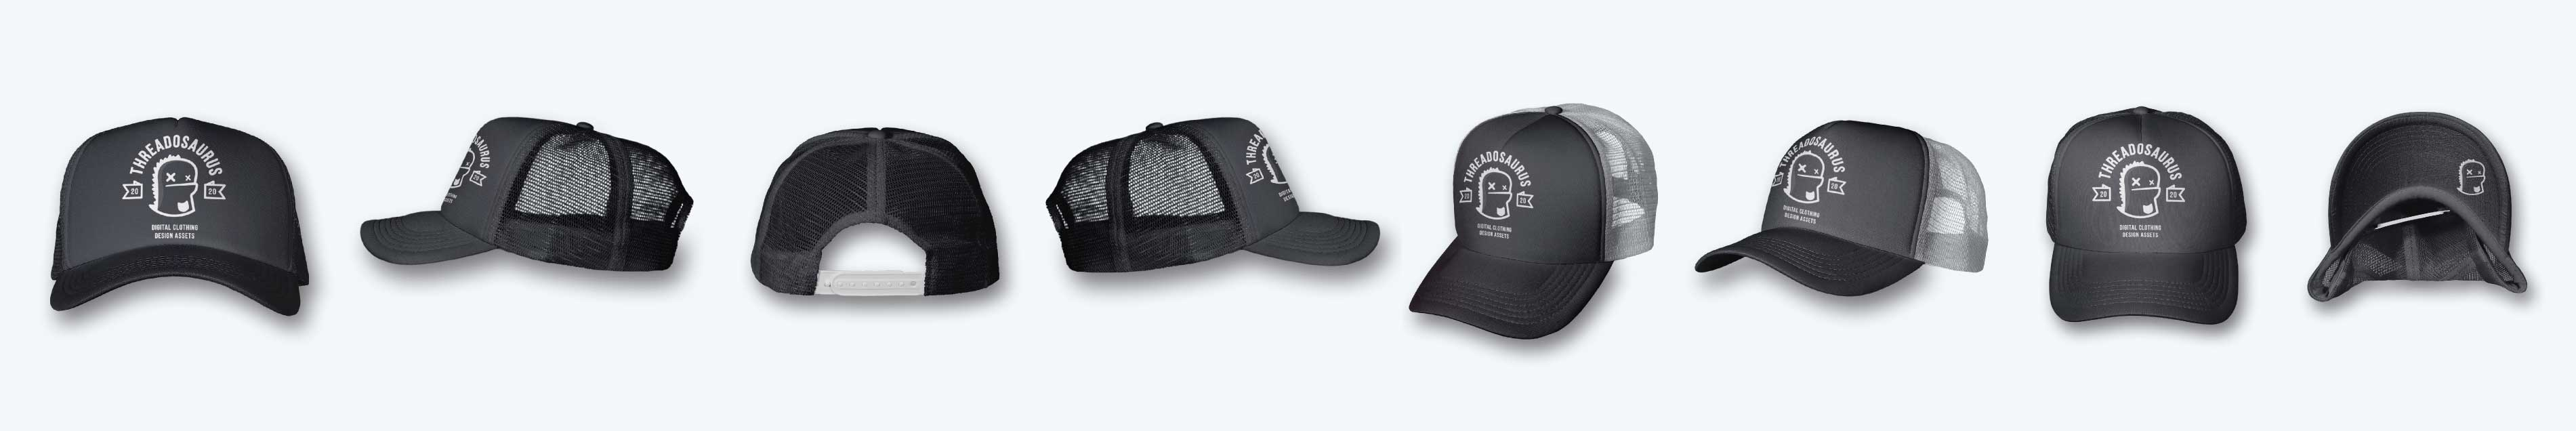 Image of a ghosted foam mesh trucker cap mockup, front, back, side, and angled views